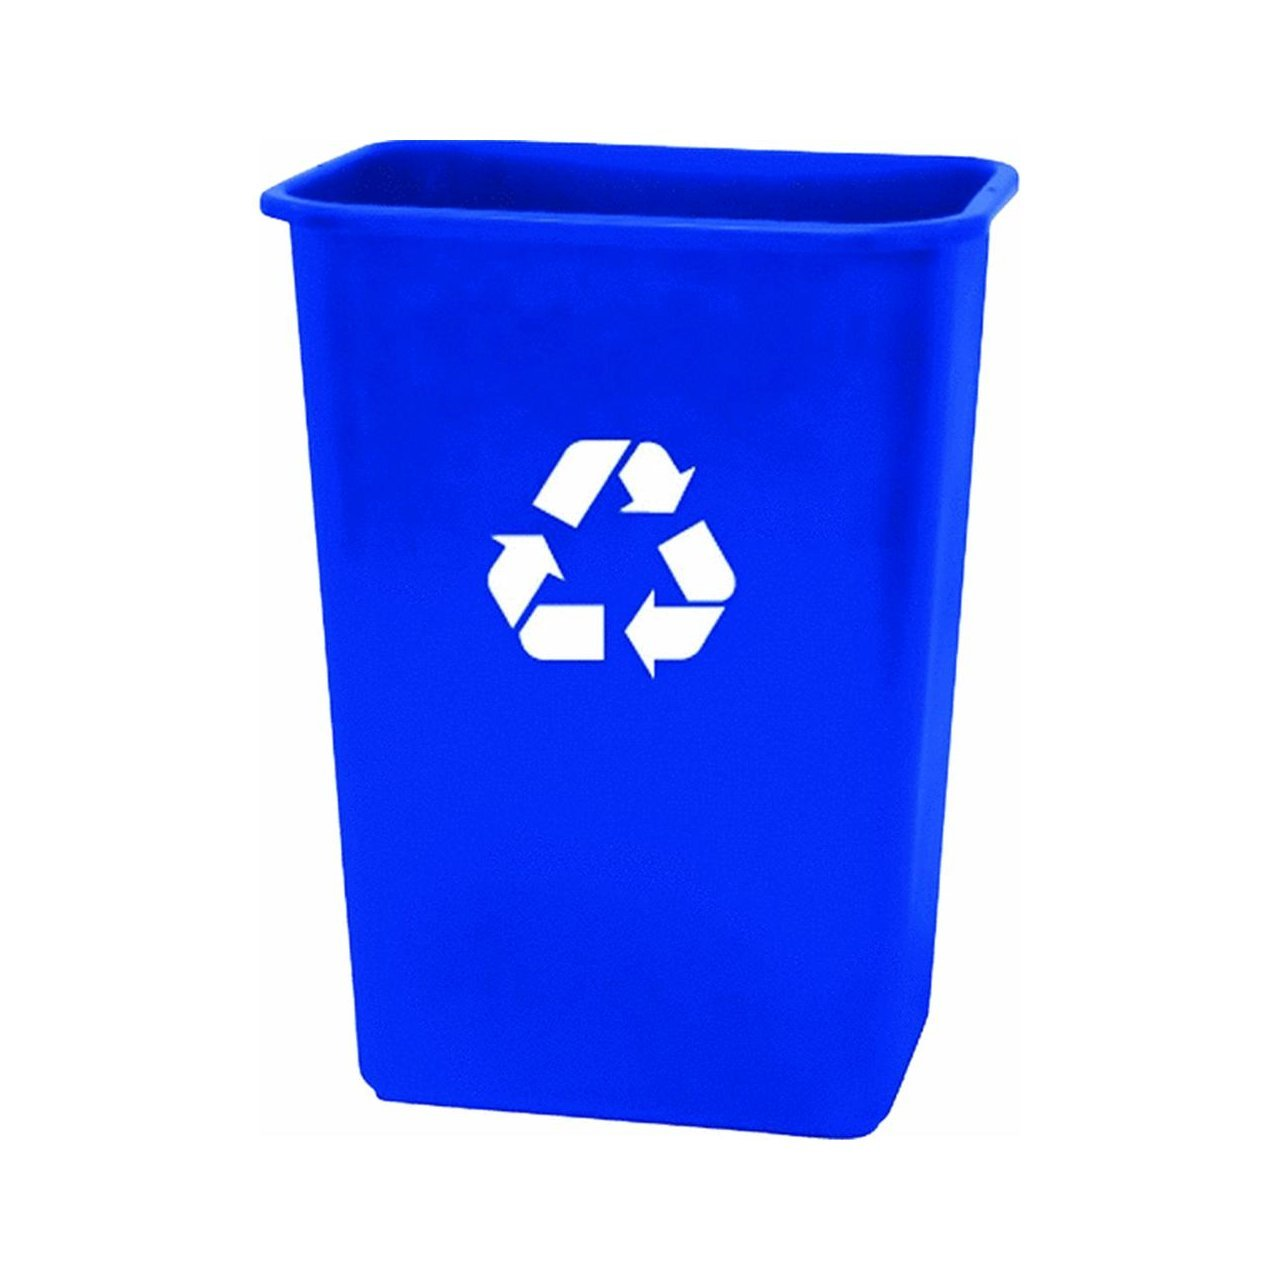 Donate A Recycling Bin The Beis Community